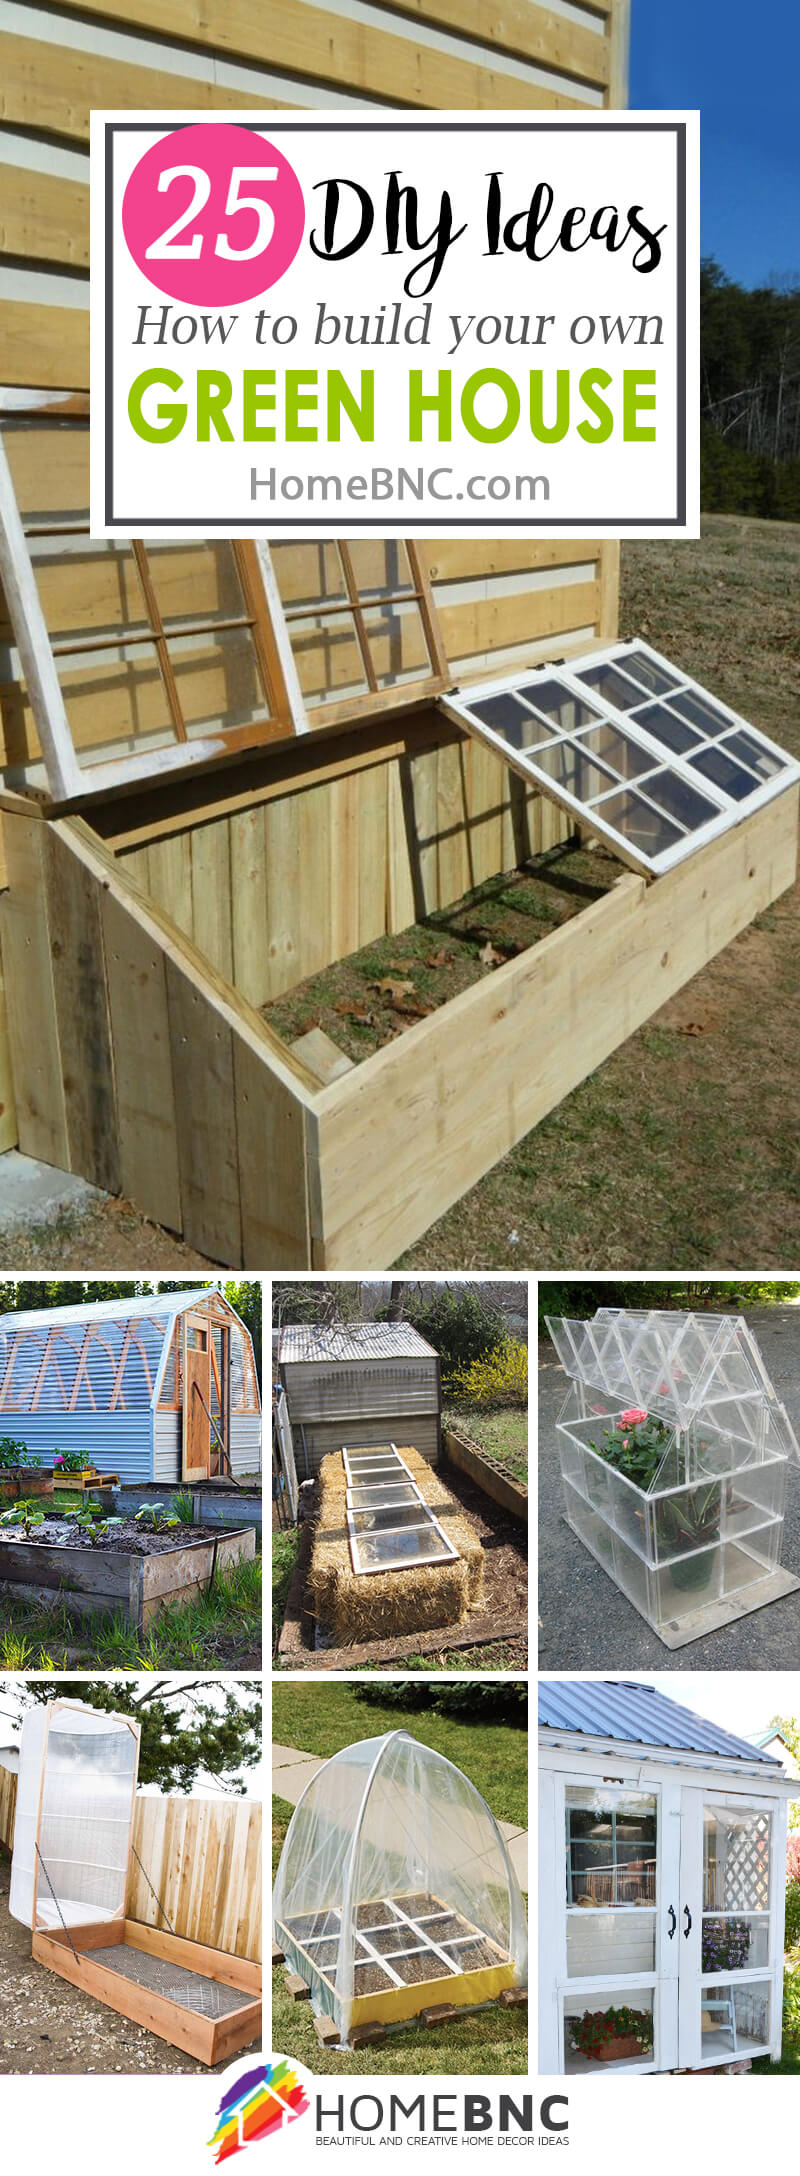 25 Best DIY Green House Ideas and Designs for 2019 Garden Greenhouse Design on greenhouse nursery designs, greenhouse interior designs, greenhouse farm designs, greenhouse pool designs, greenhouse planting, greenhouse door designs, chicken greenhouse designs, greenhouse green garden pavilion, modern greenhouse designs, greenhouse design plans, unique greenhouse designs, greenhouse conservatory designs, greenhouse business plan, home greenhouse designs, greenhouse tips, hoop house greenhouse designs, greenhouse potting shed designs, inside greenhouse designs, greenhouse landscaping, best greenhouse designs,